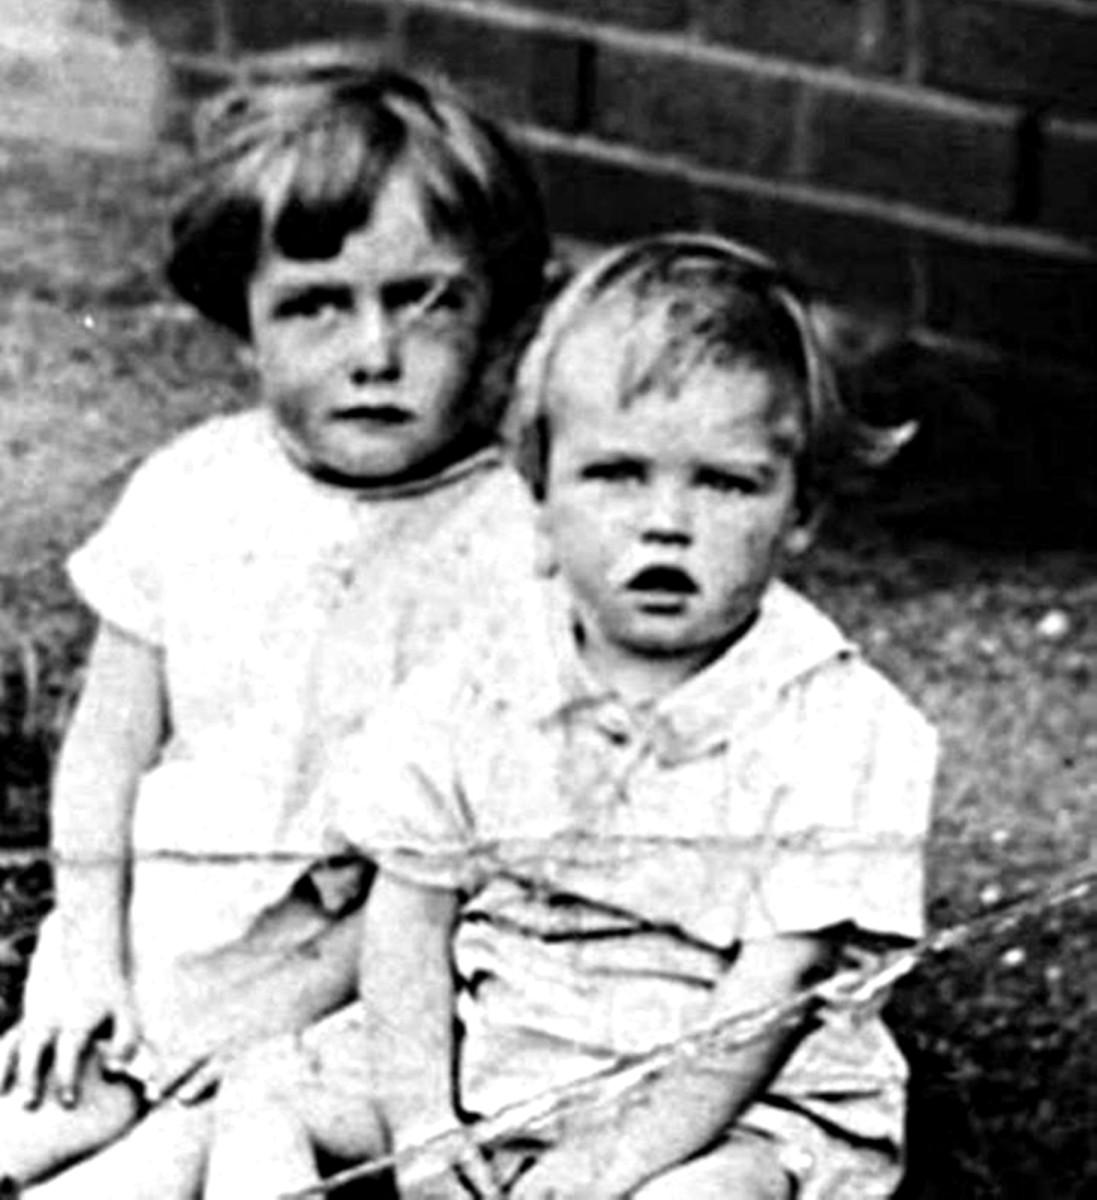 Mum and her little brother, my uncle Ken, as children in Yorkshire in the early 1930s.